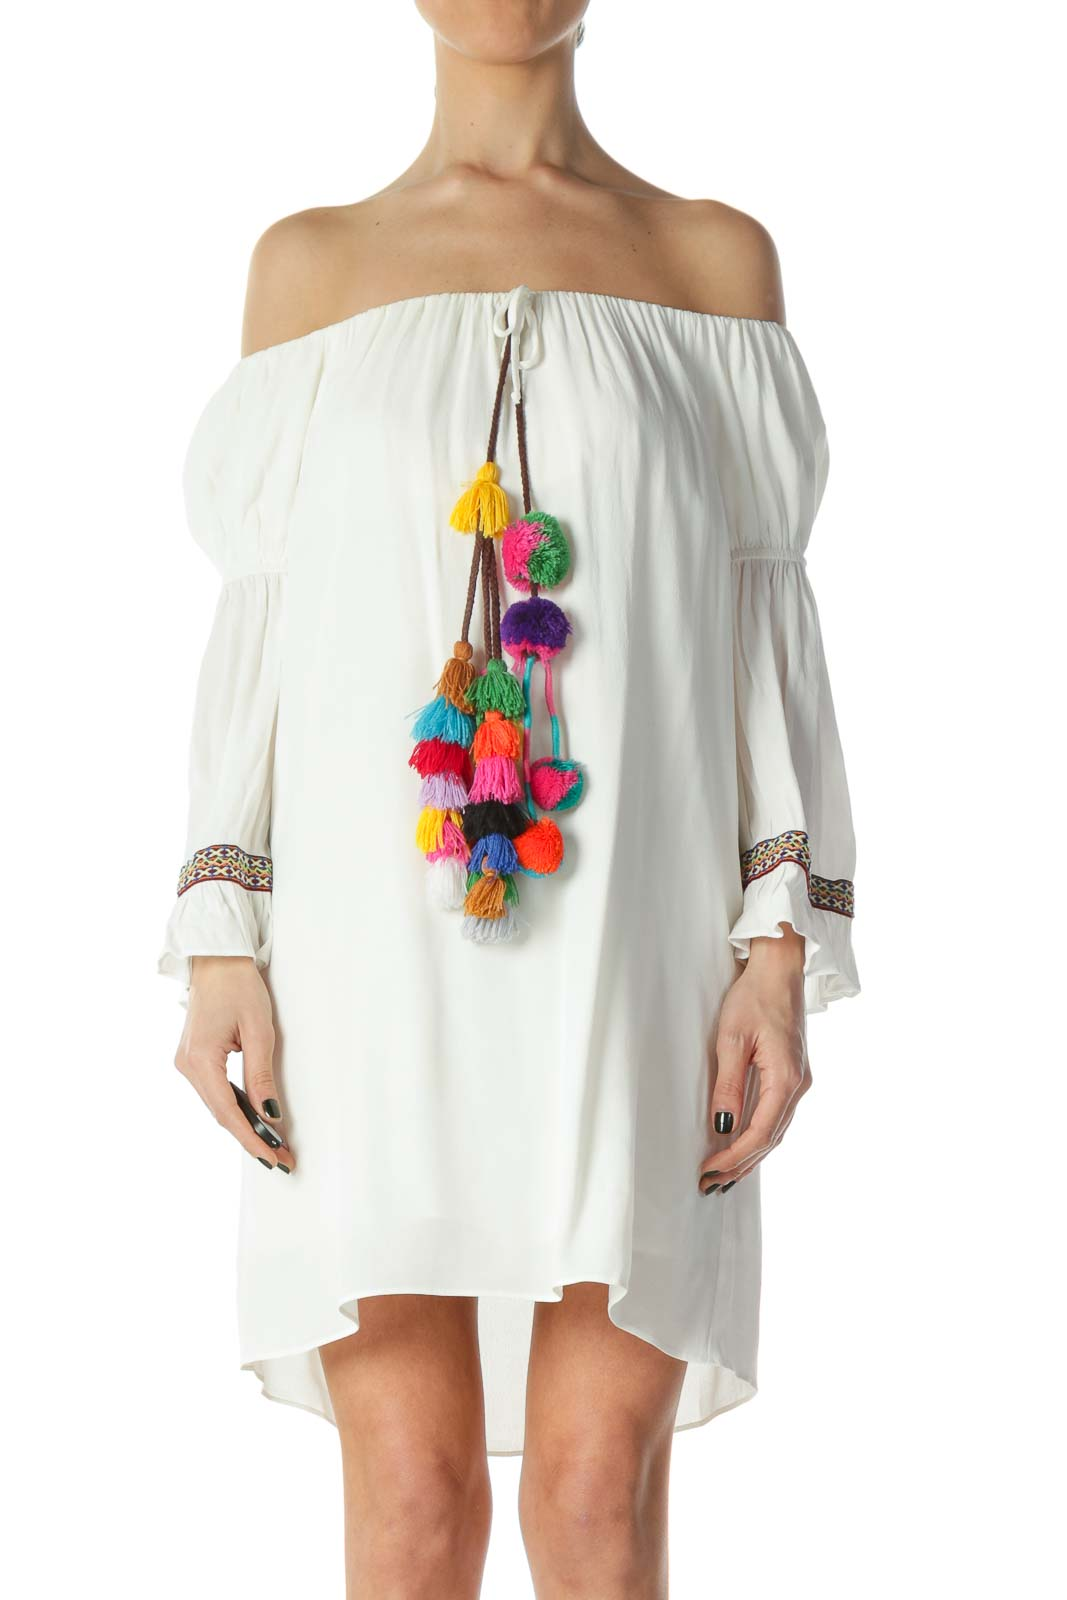 White Off-Shoulder Boho Pom-Pom Detail Dress